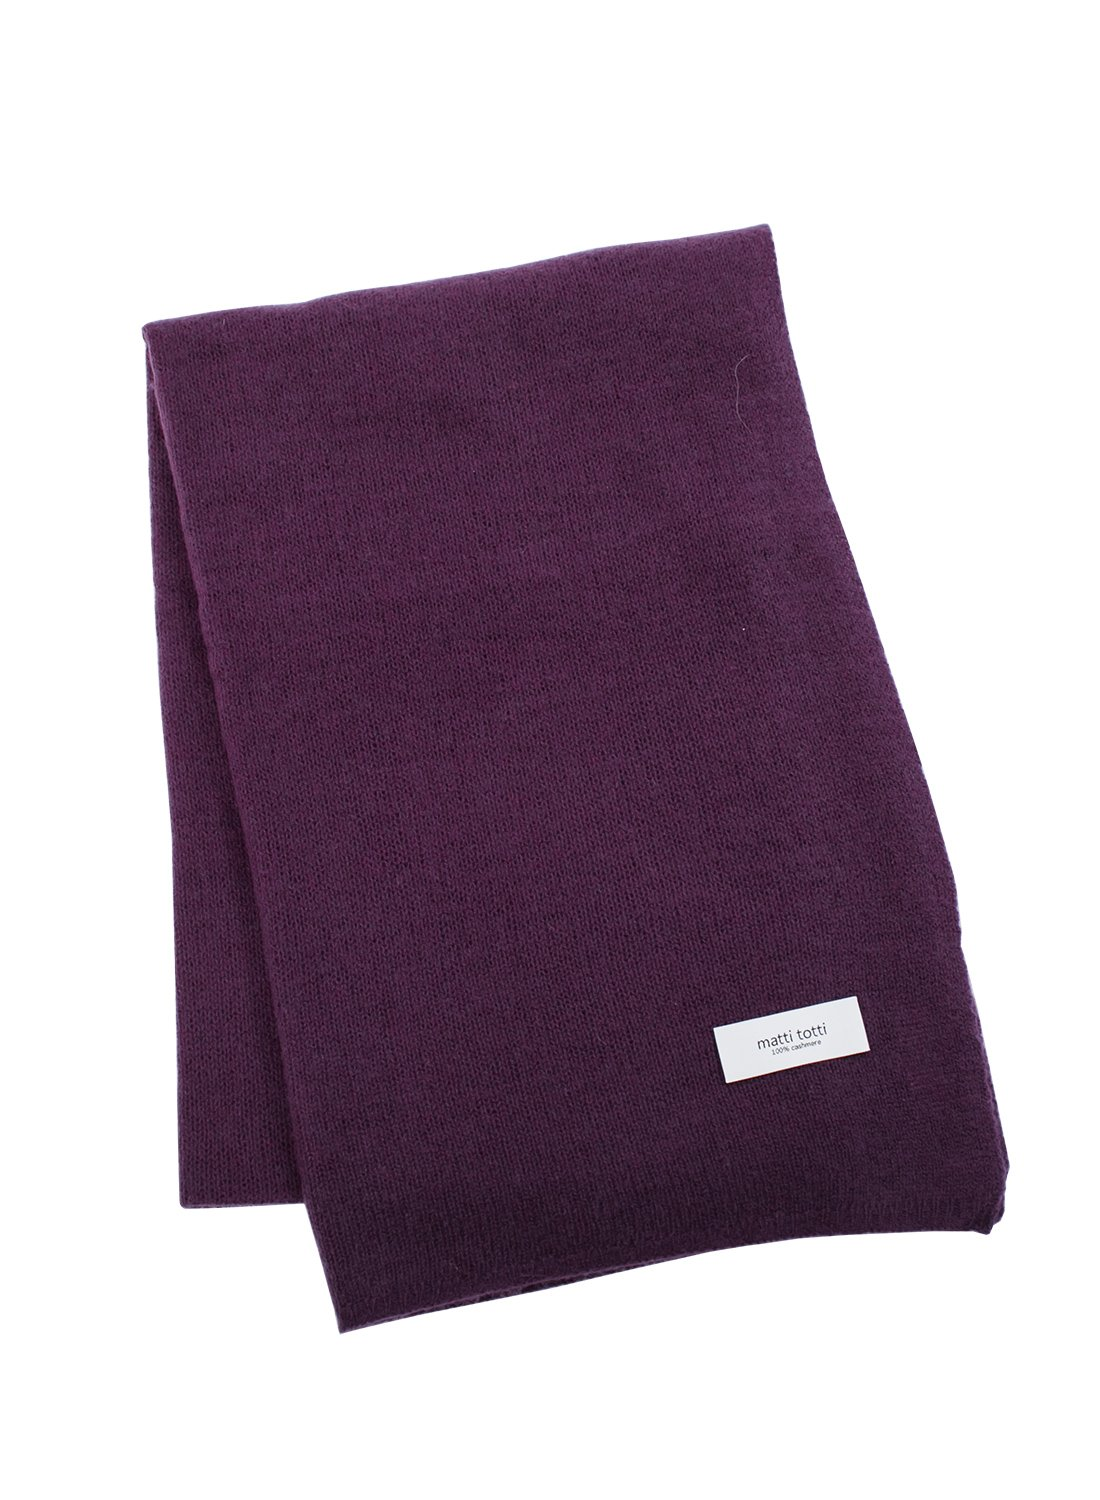 Purple 100% Cashmere Knit Shawl Men Gift Scarves Wrap Blanket F0524B1-5